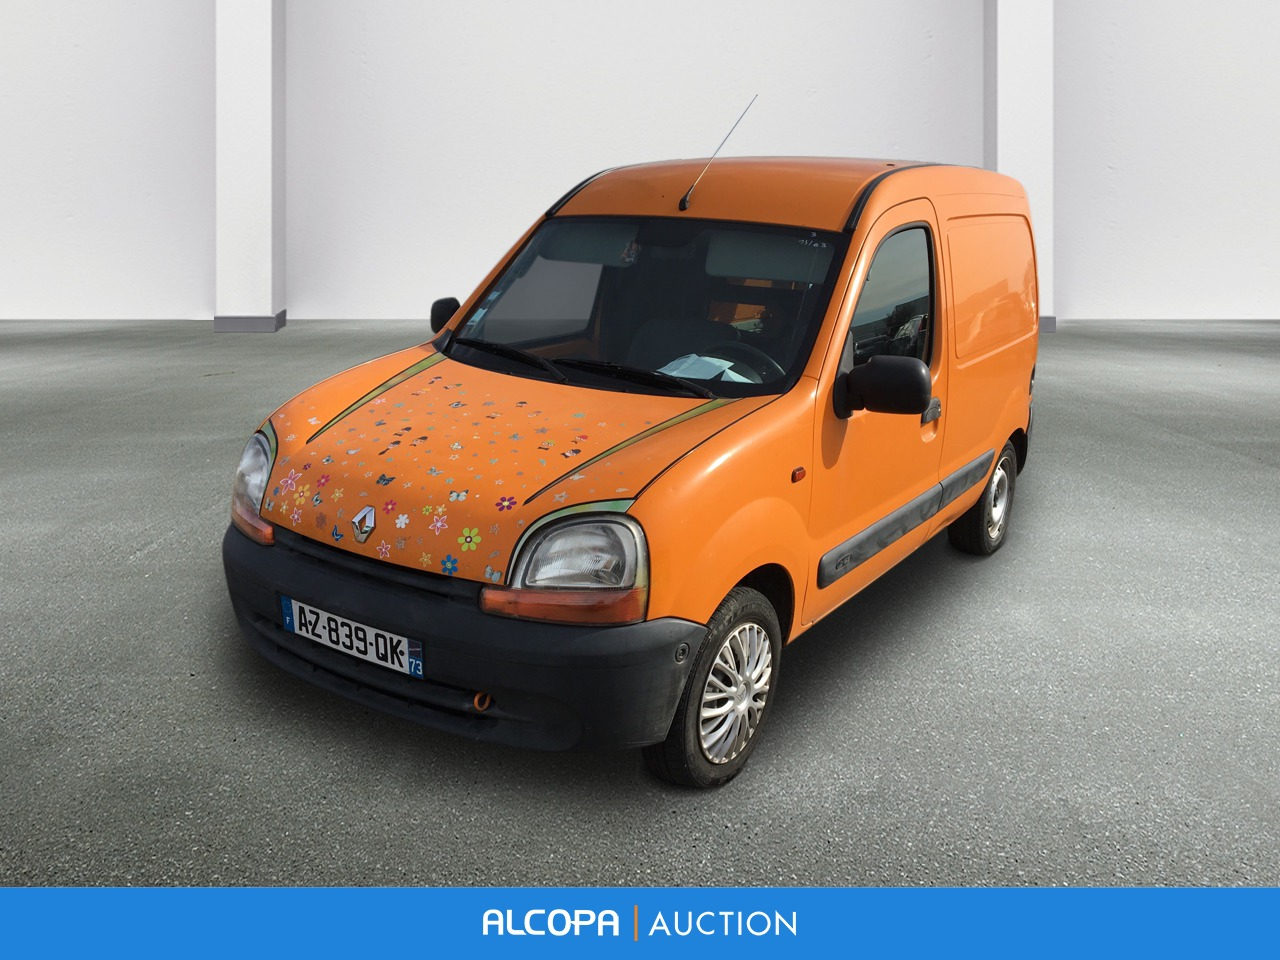 renault kangoo express kangoo express 1 9 d 55 generique lyon alcopa auction. Black Bedroom Furniture Sets. Home Design Ideas